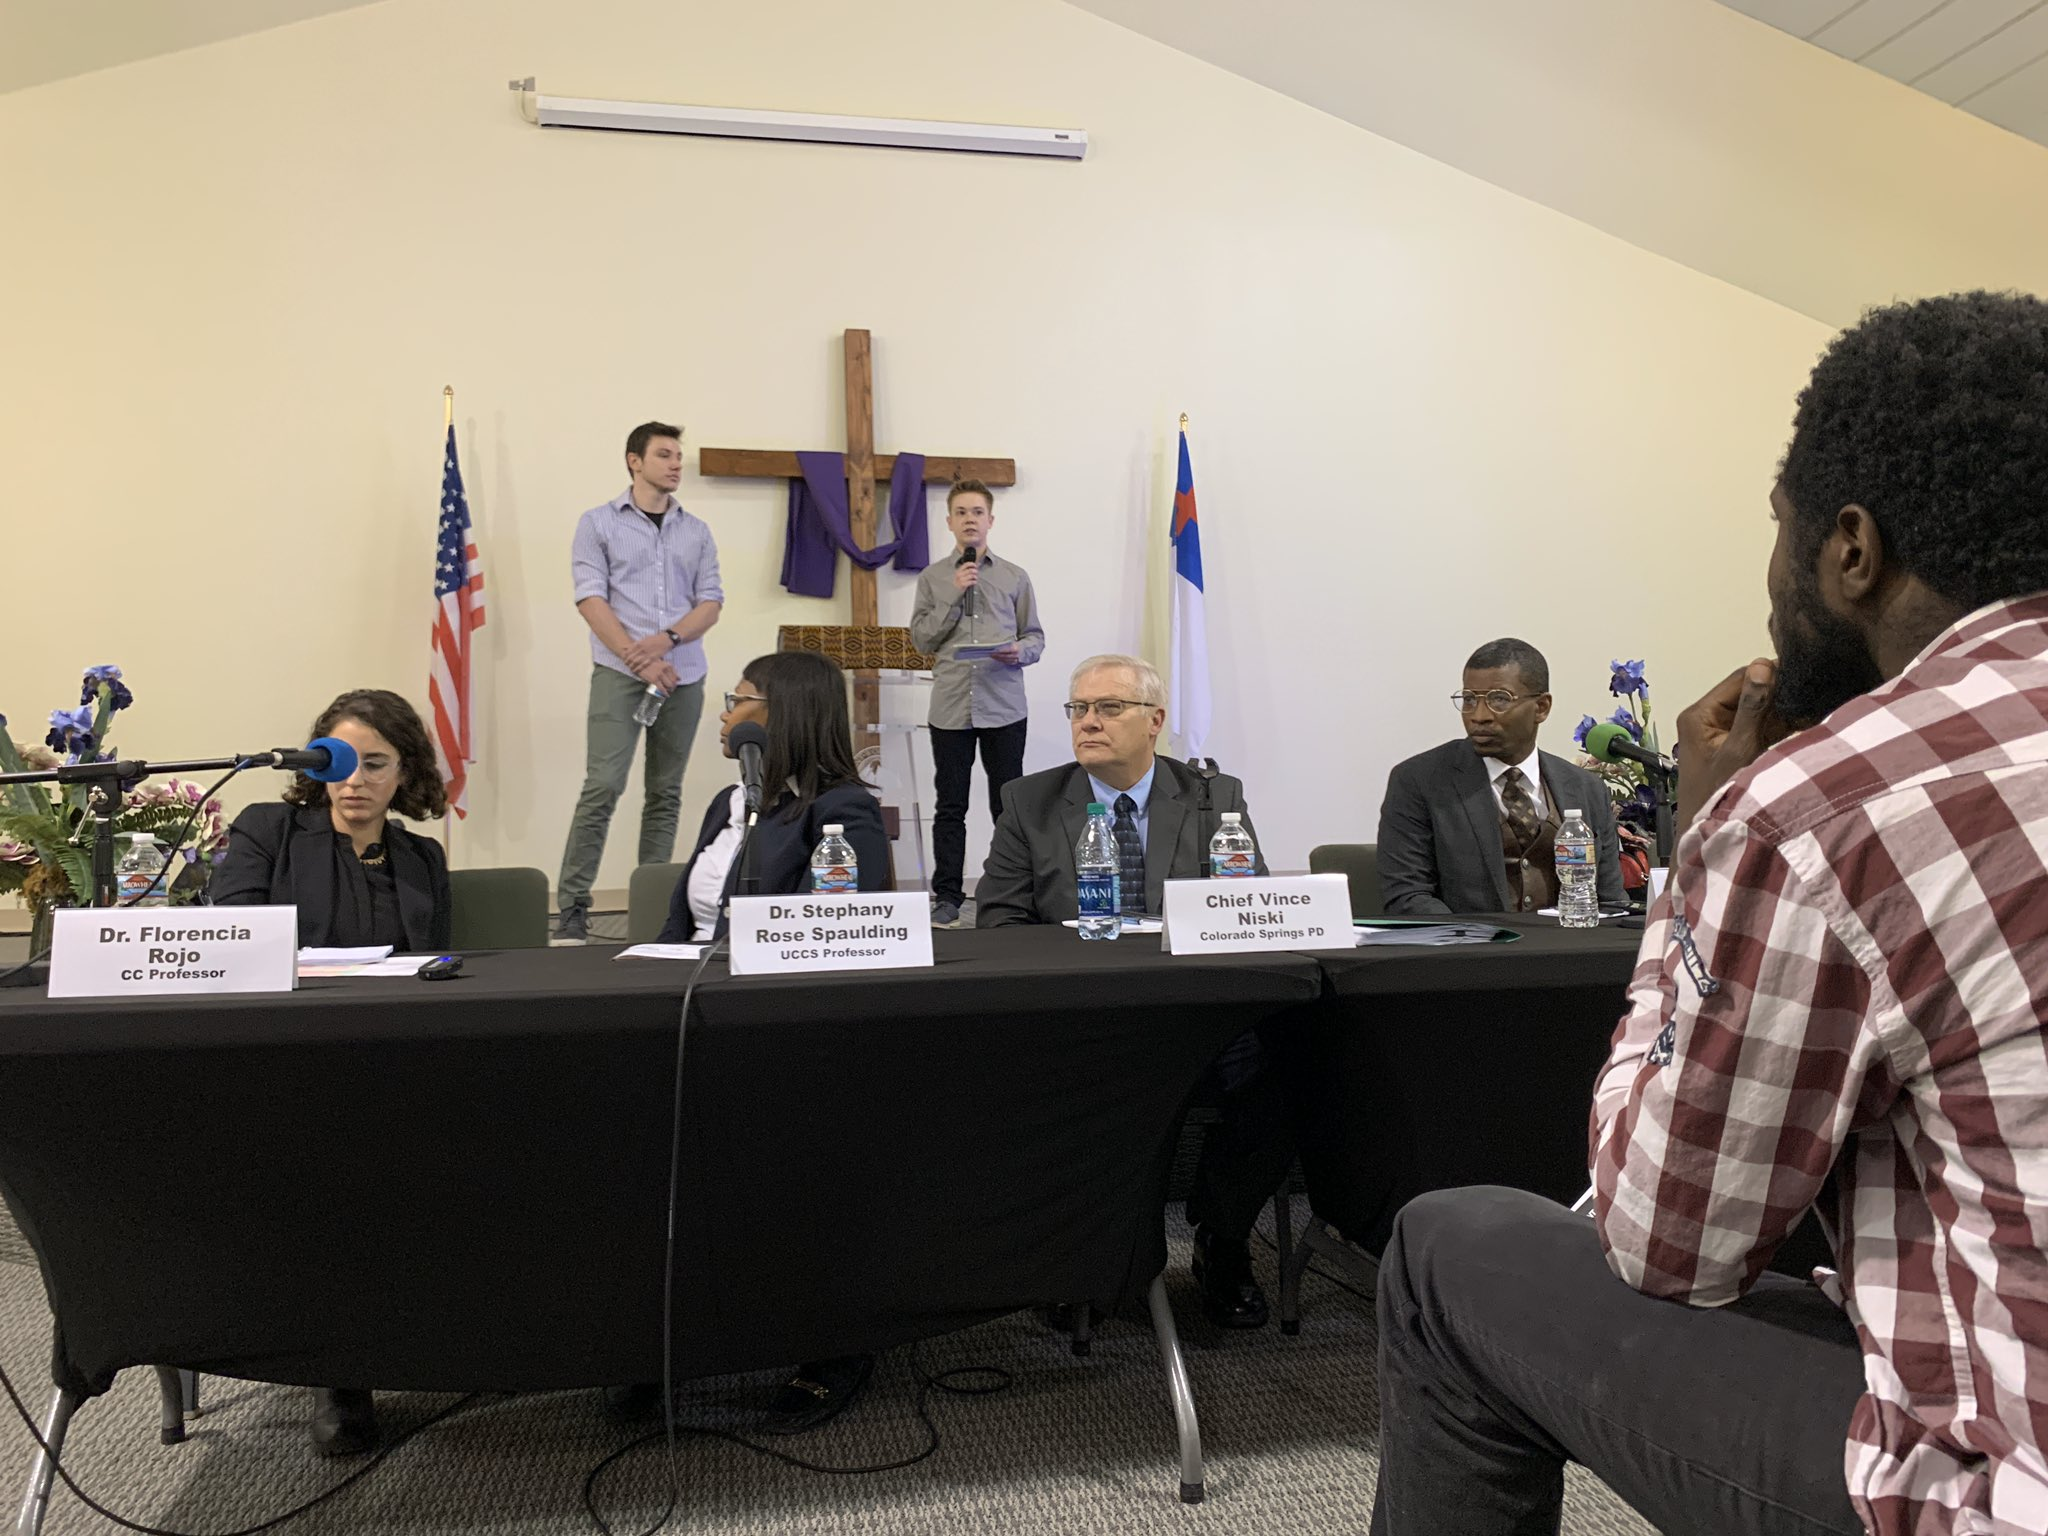 Colorado Springs Police Chief Vince Niski, Kevin Mitchell of the local NAACP, Senate candidate and professor Stephany Rose Spaulding spoke at a forum on policing at Relevant Word Ministries sparked by last year's shooting of De'Von Bailey in Colorado Springs on Feb. 6, 2020.